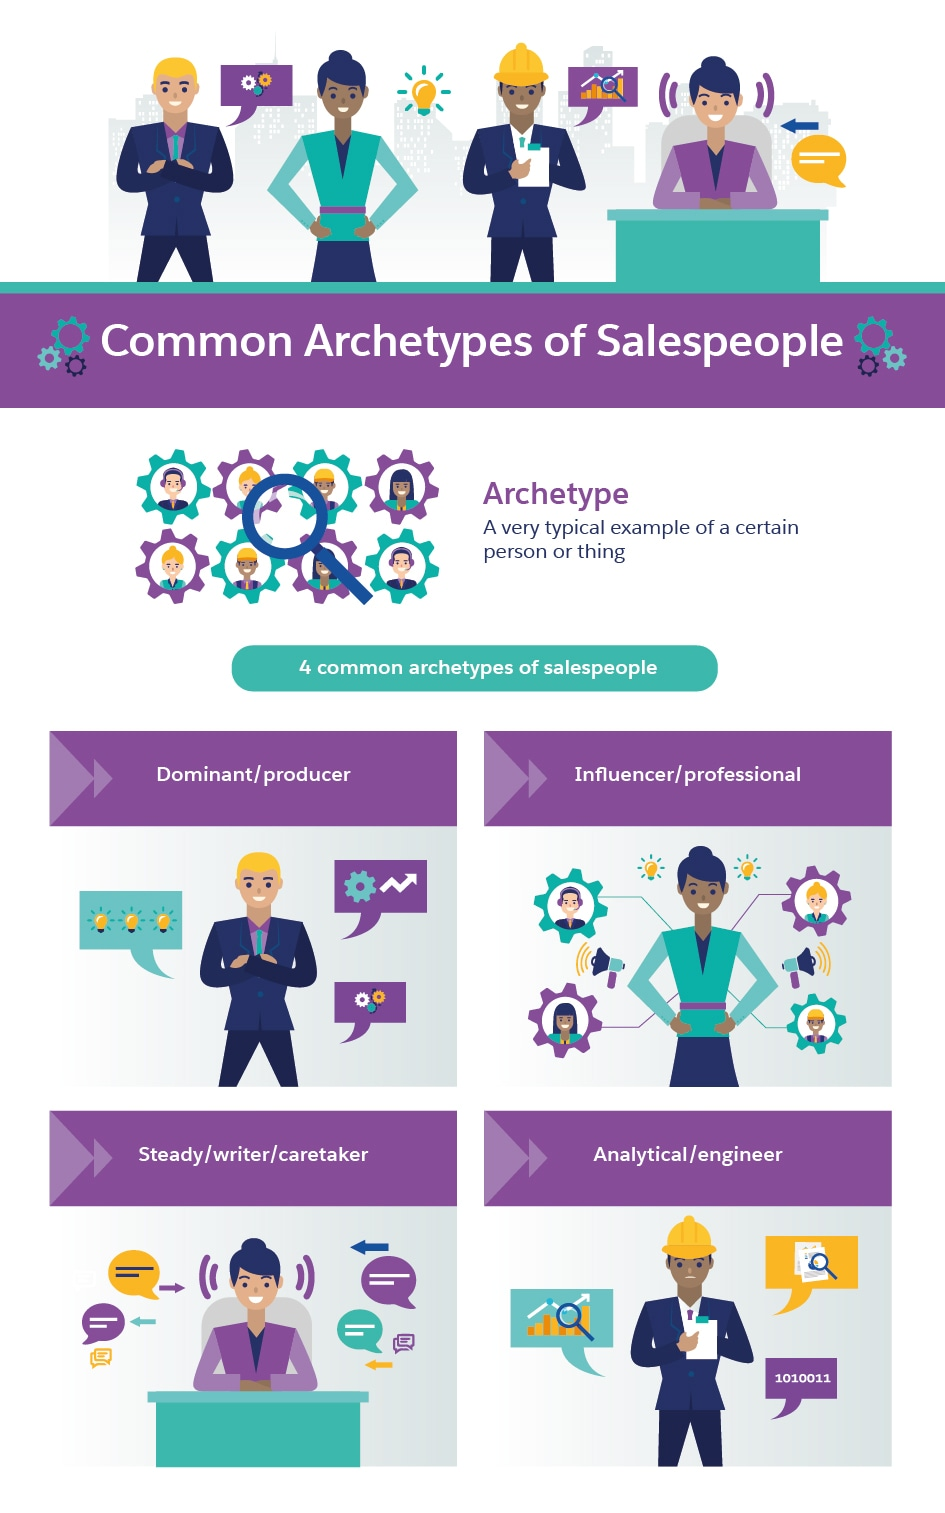 Common Archetypes of Salespeople